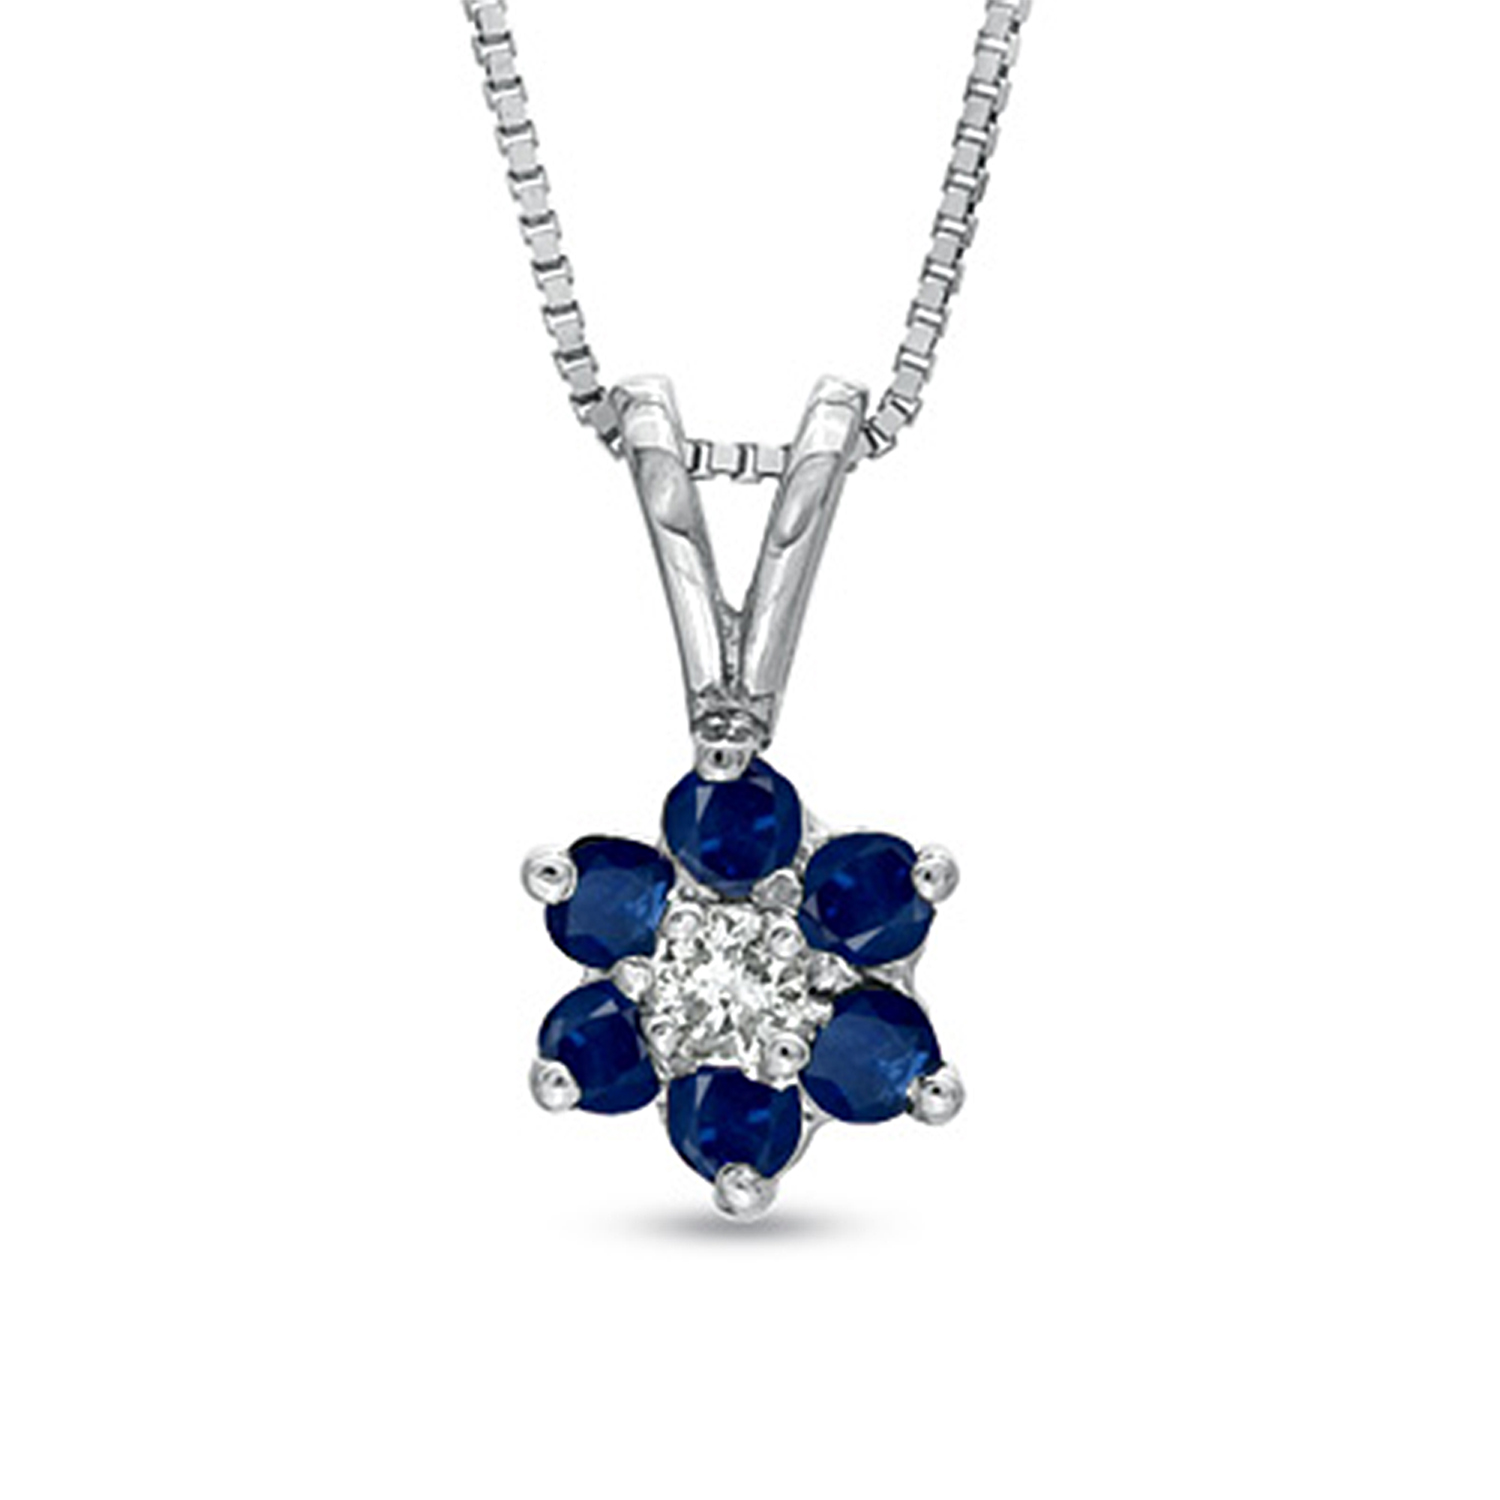 View 0.24ct tw Flower Cluster Diamond and Sapphireh Pendant 14k Gold